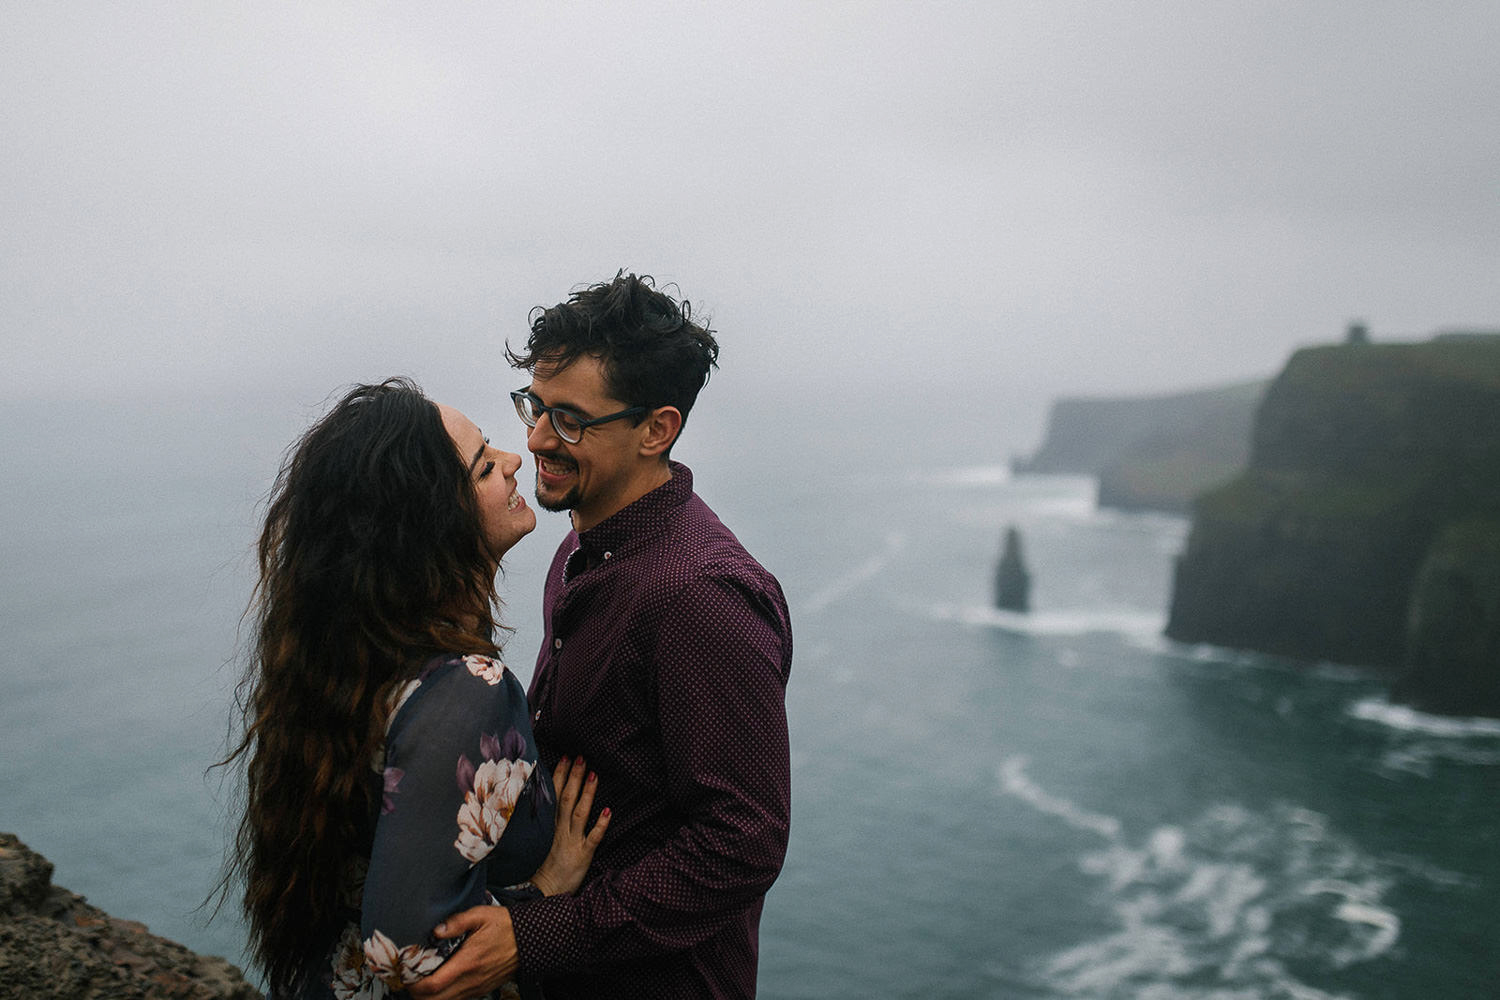 Cliffs-of-moher-proposal-ME-1 Cliffs of Moher Proposal  // Michael & Emmaly